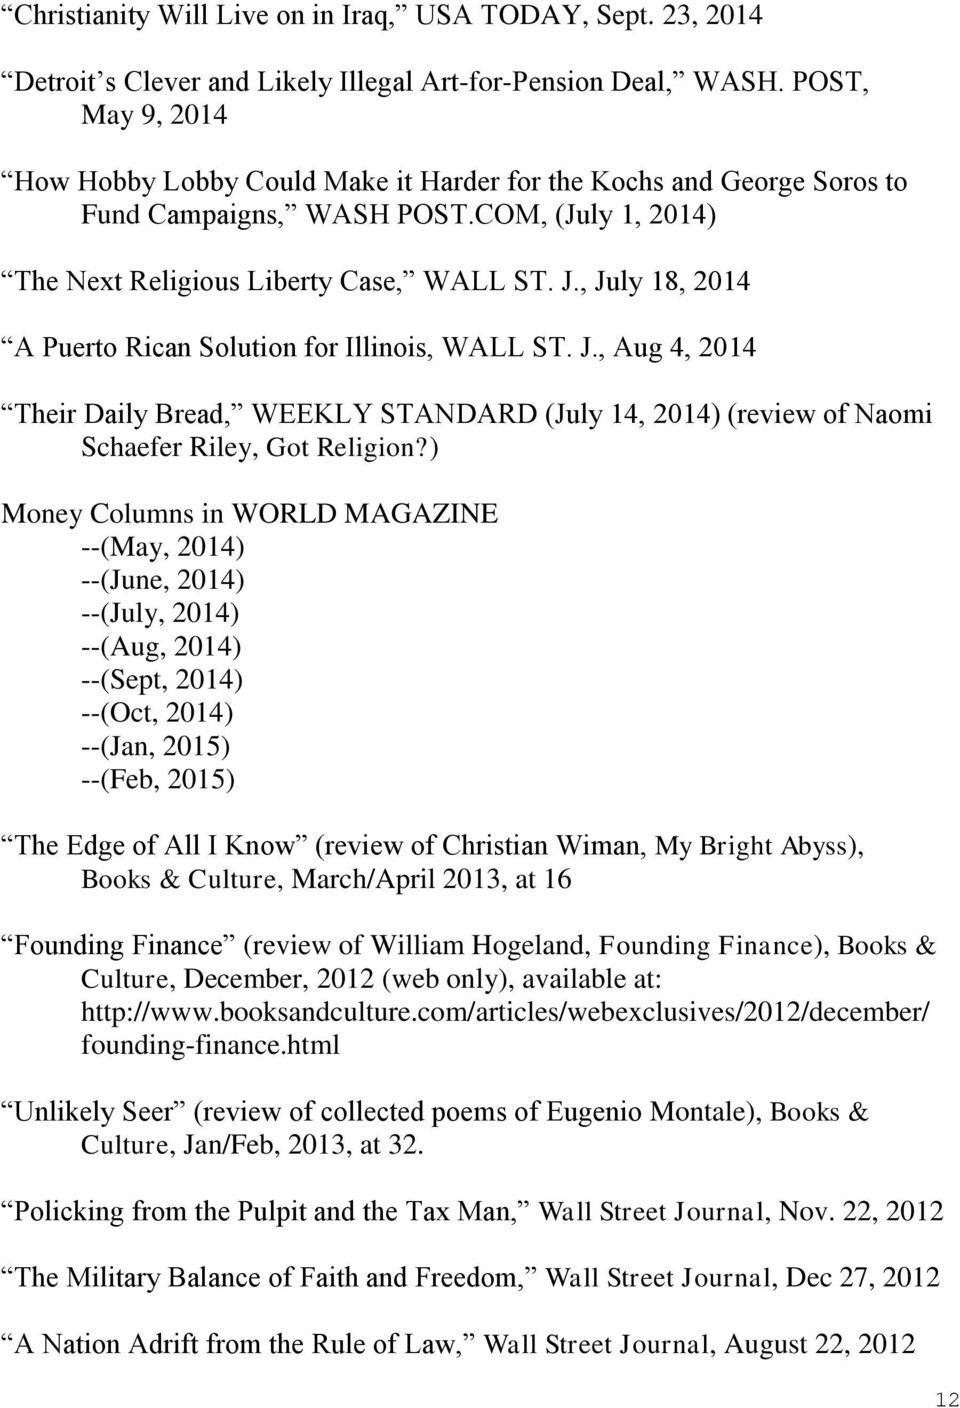 , July 18, 2014 A Puerto Rican Solution for Illinois, WALL ST. J., Aug 4, 2014 Their Daily Bread, WEEKLY STANDARD (July 14, 2014) (review of Naomi Schaefer Riley, Got Religion?